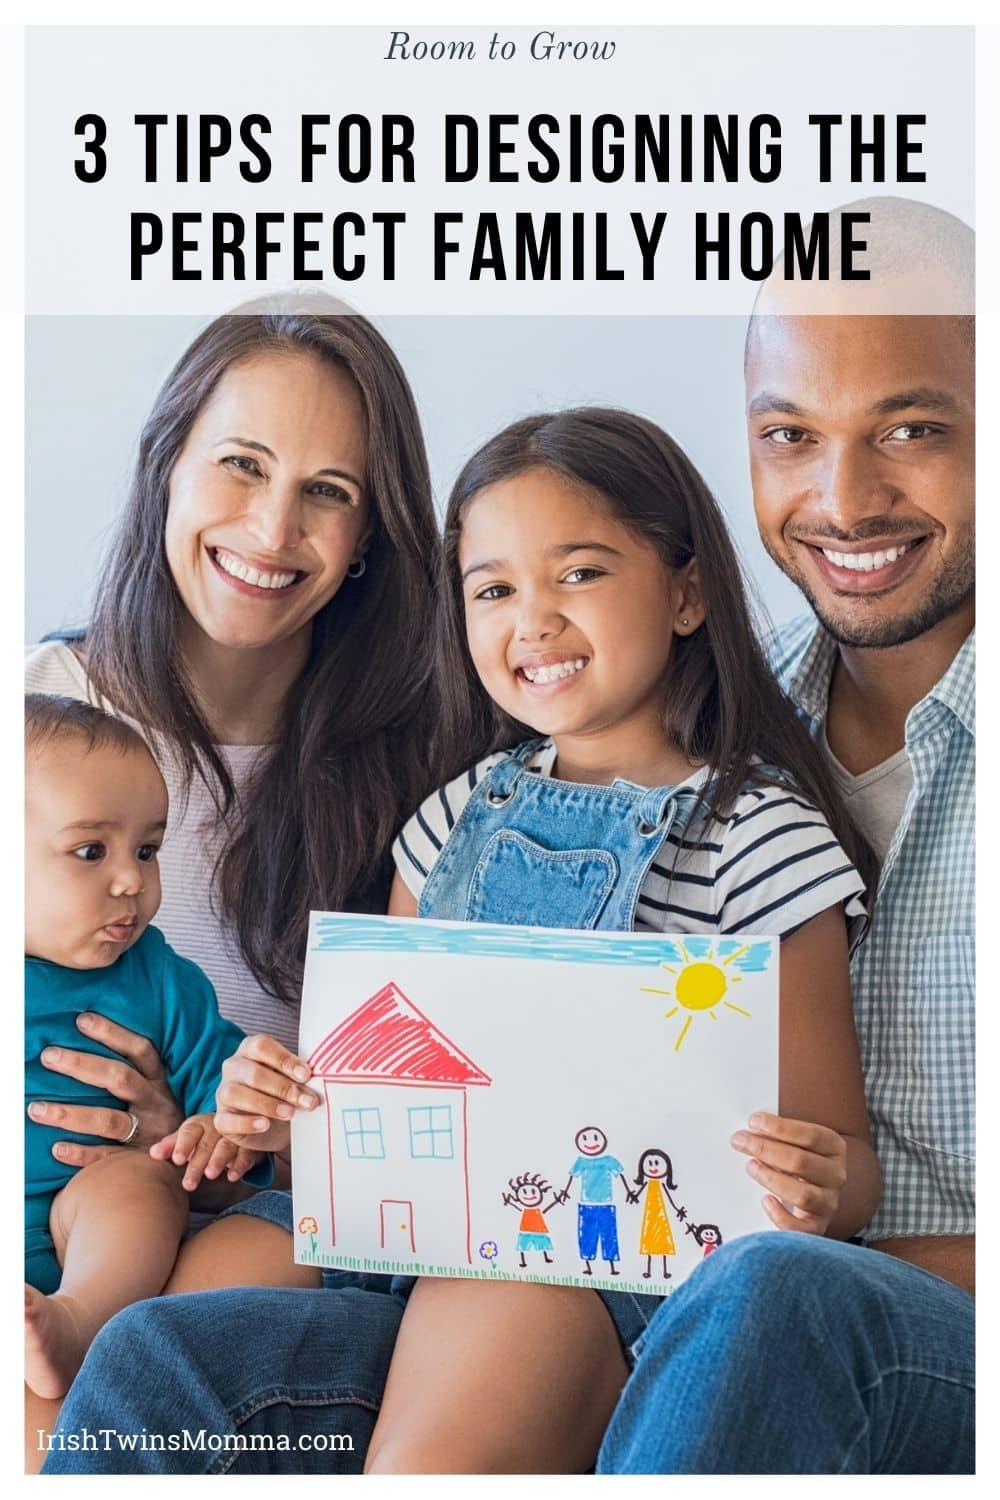 3 Tips for Designing the Perfect Family Home